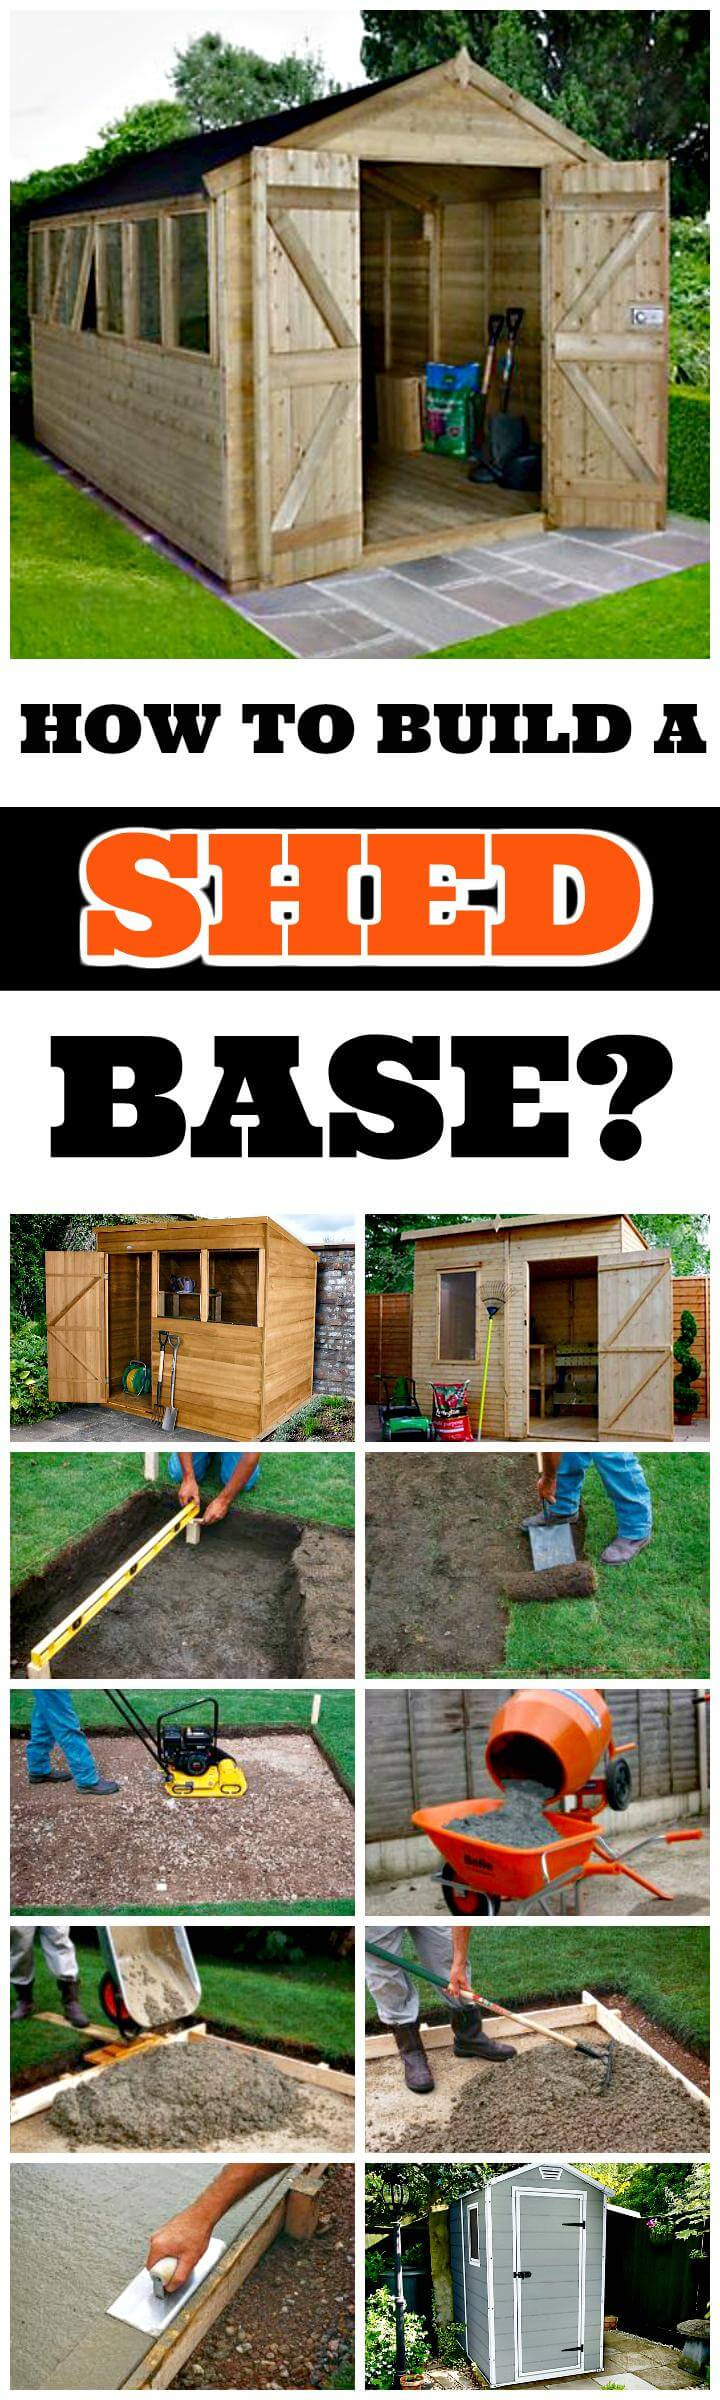 how to build a shed base